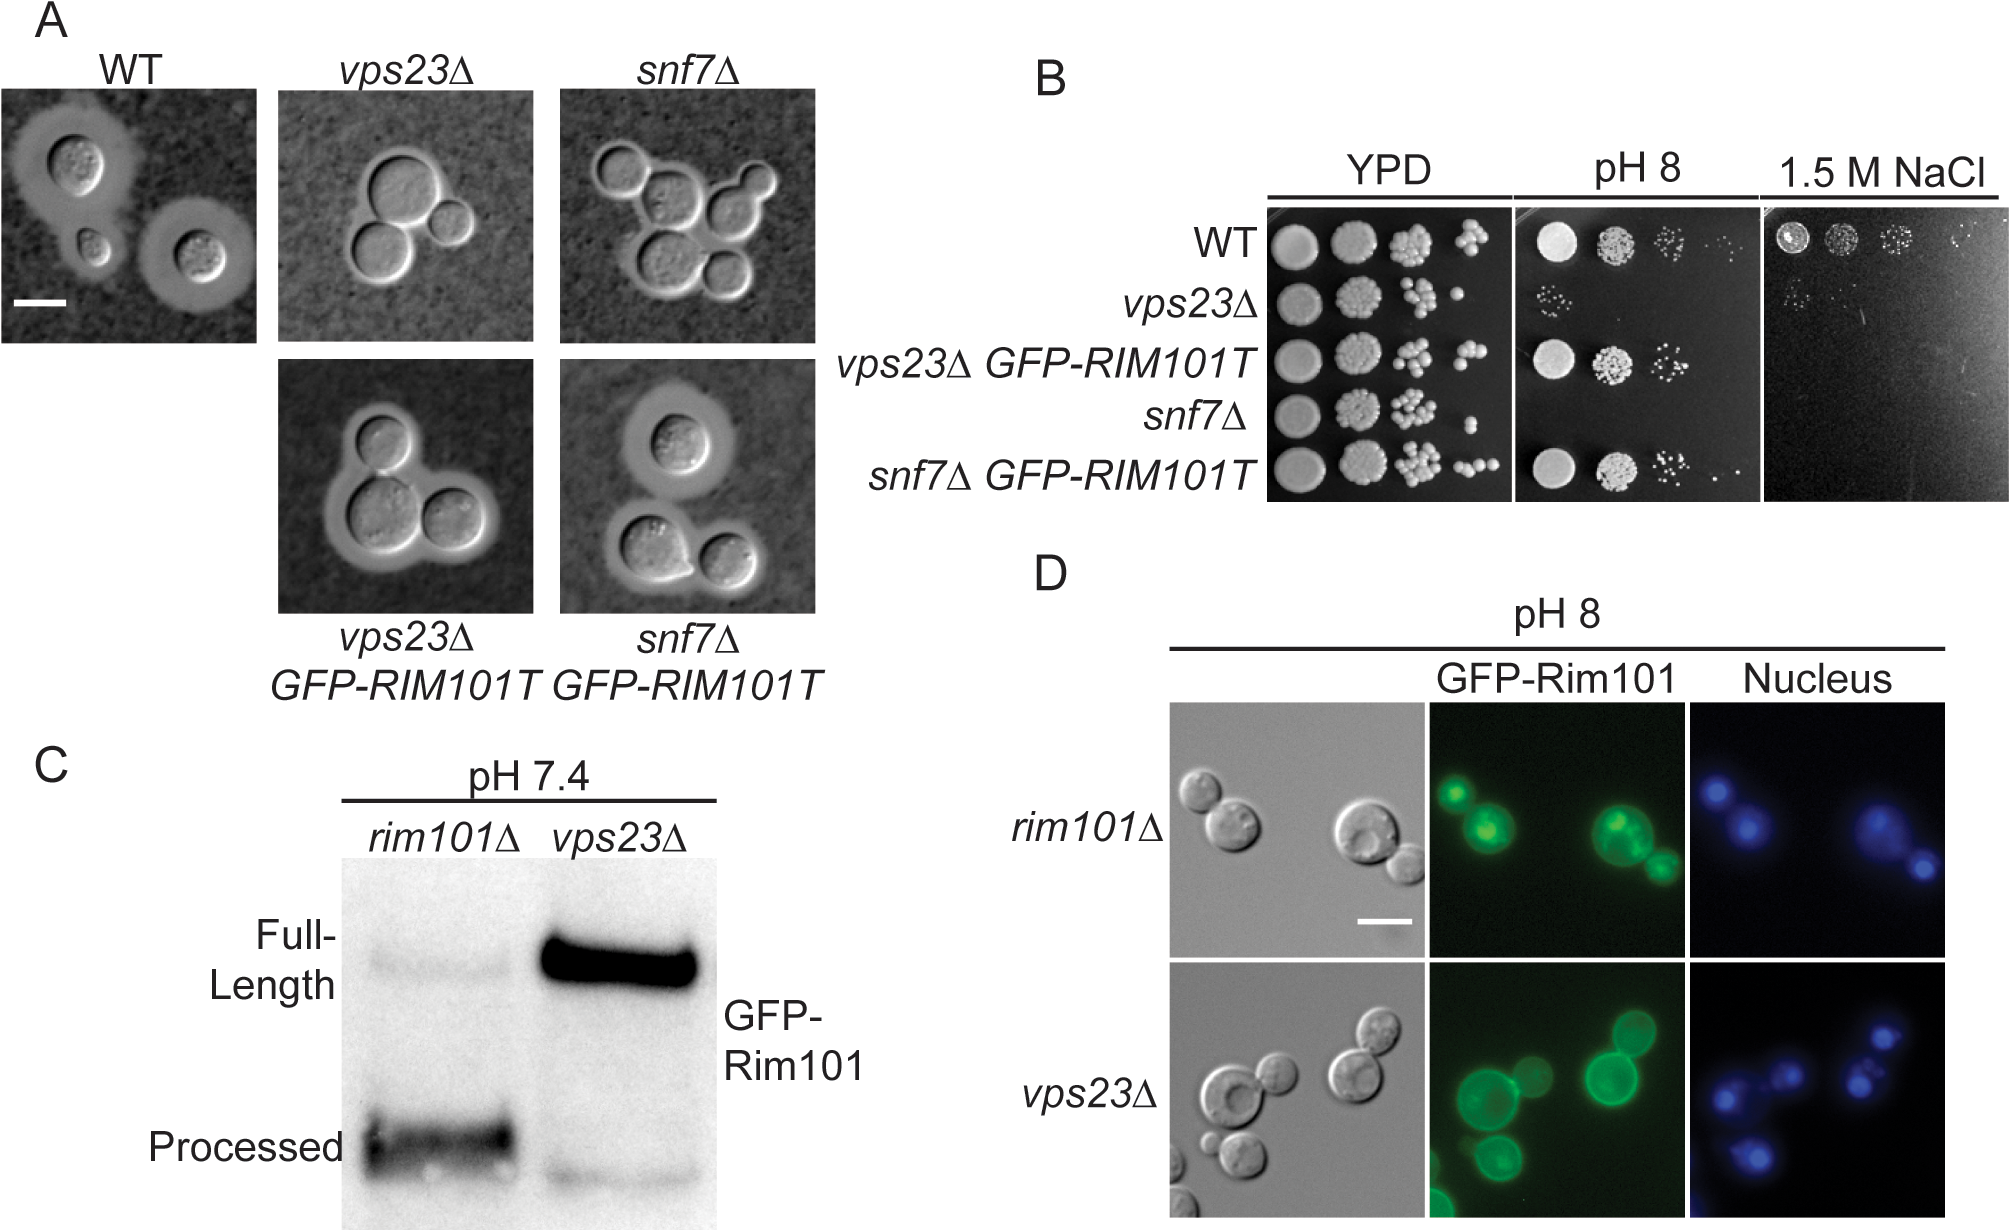 ESCRT complex proteins, Vps23 and Snf7, are required for Rim101 activation.